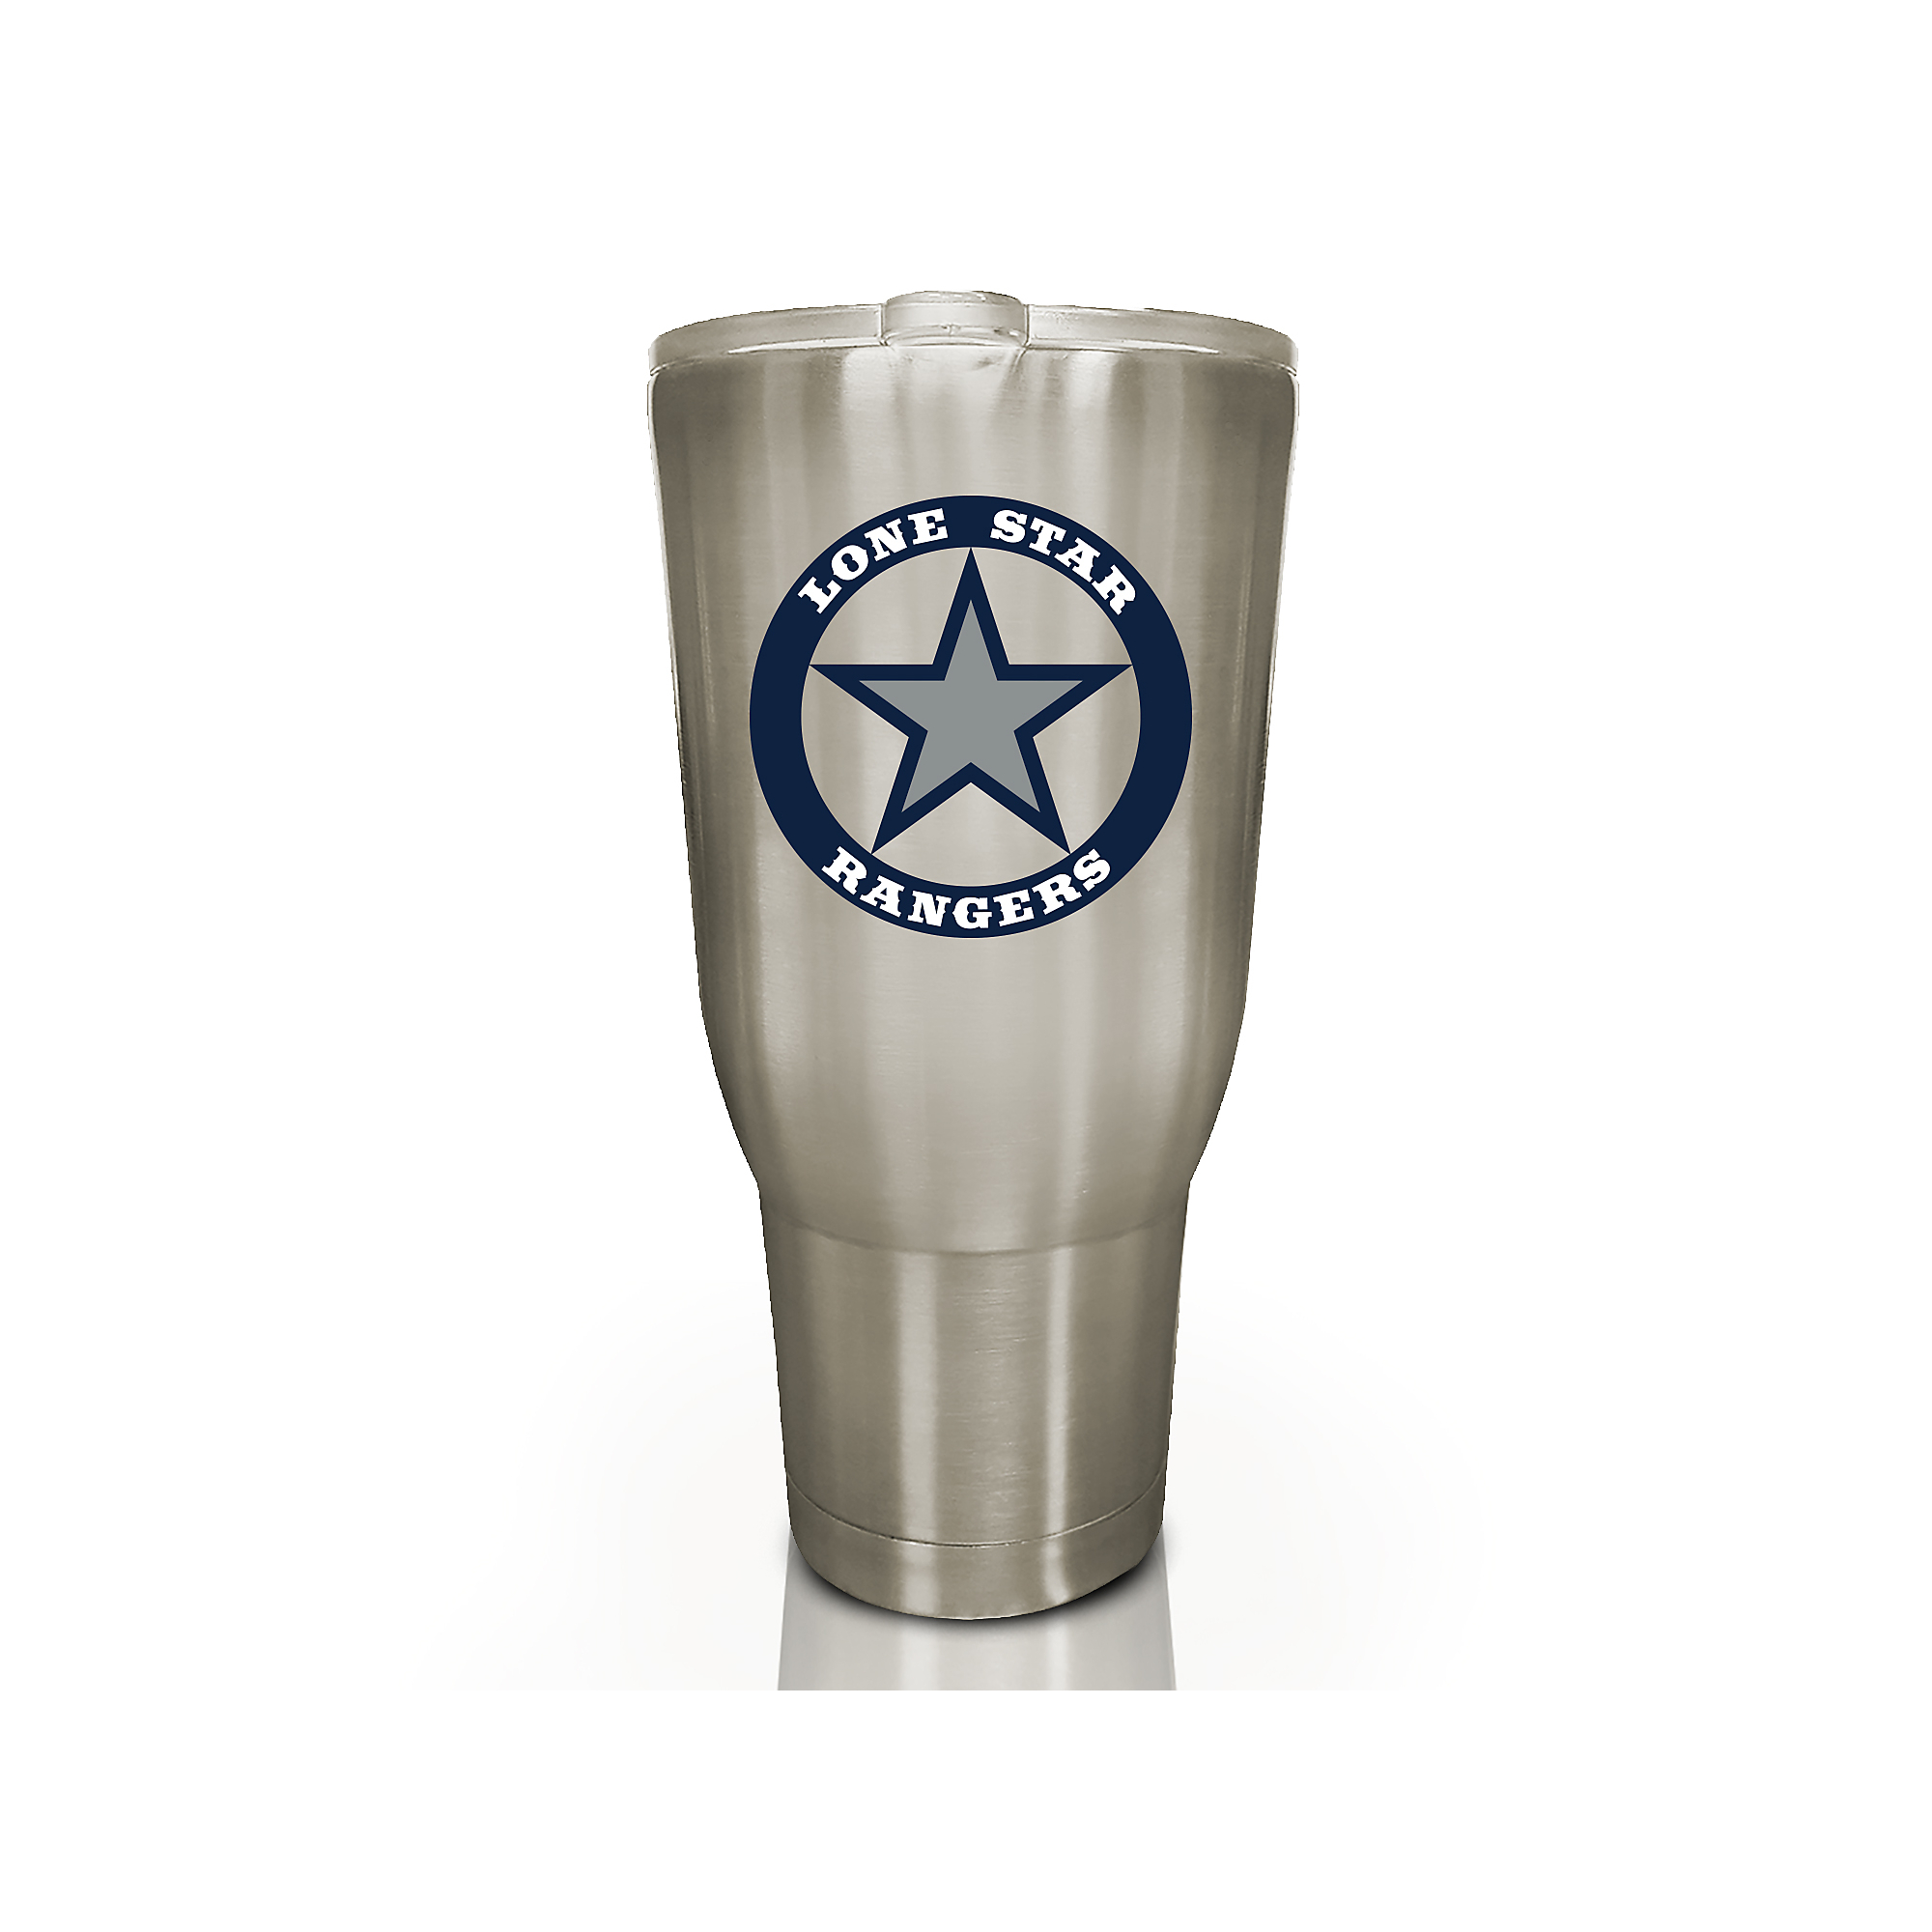 Lone Star Rangers The Keeper 32 oz Stainless Steel Tumbler